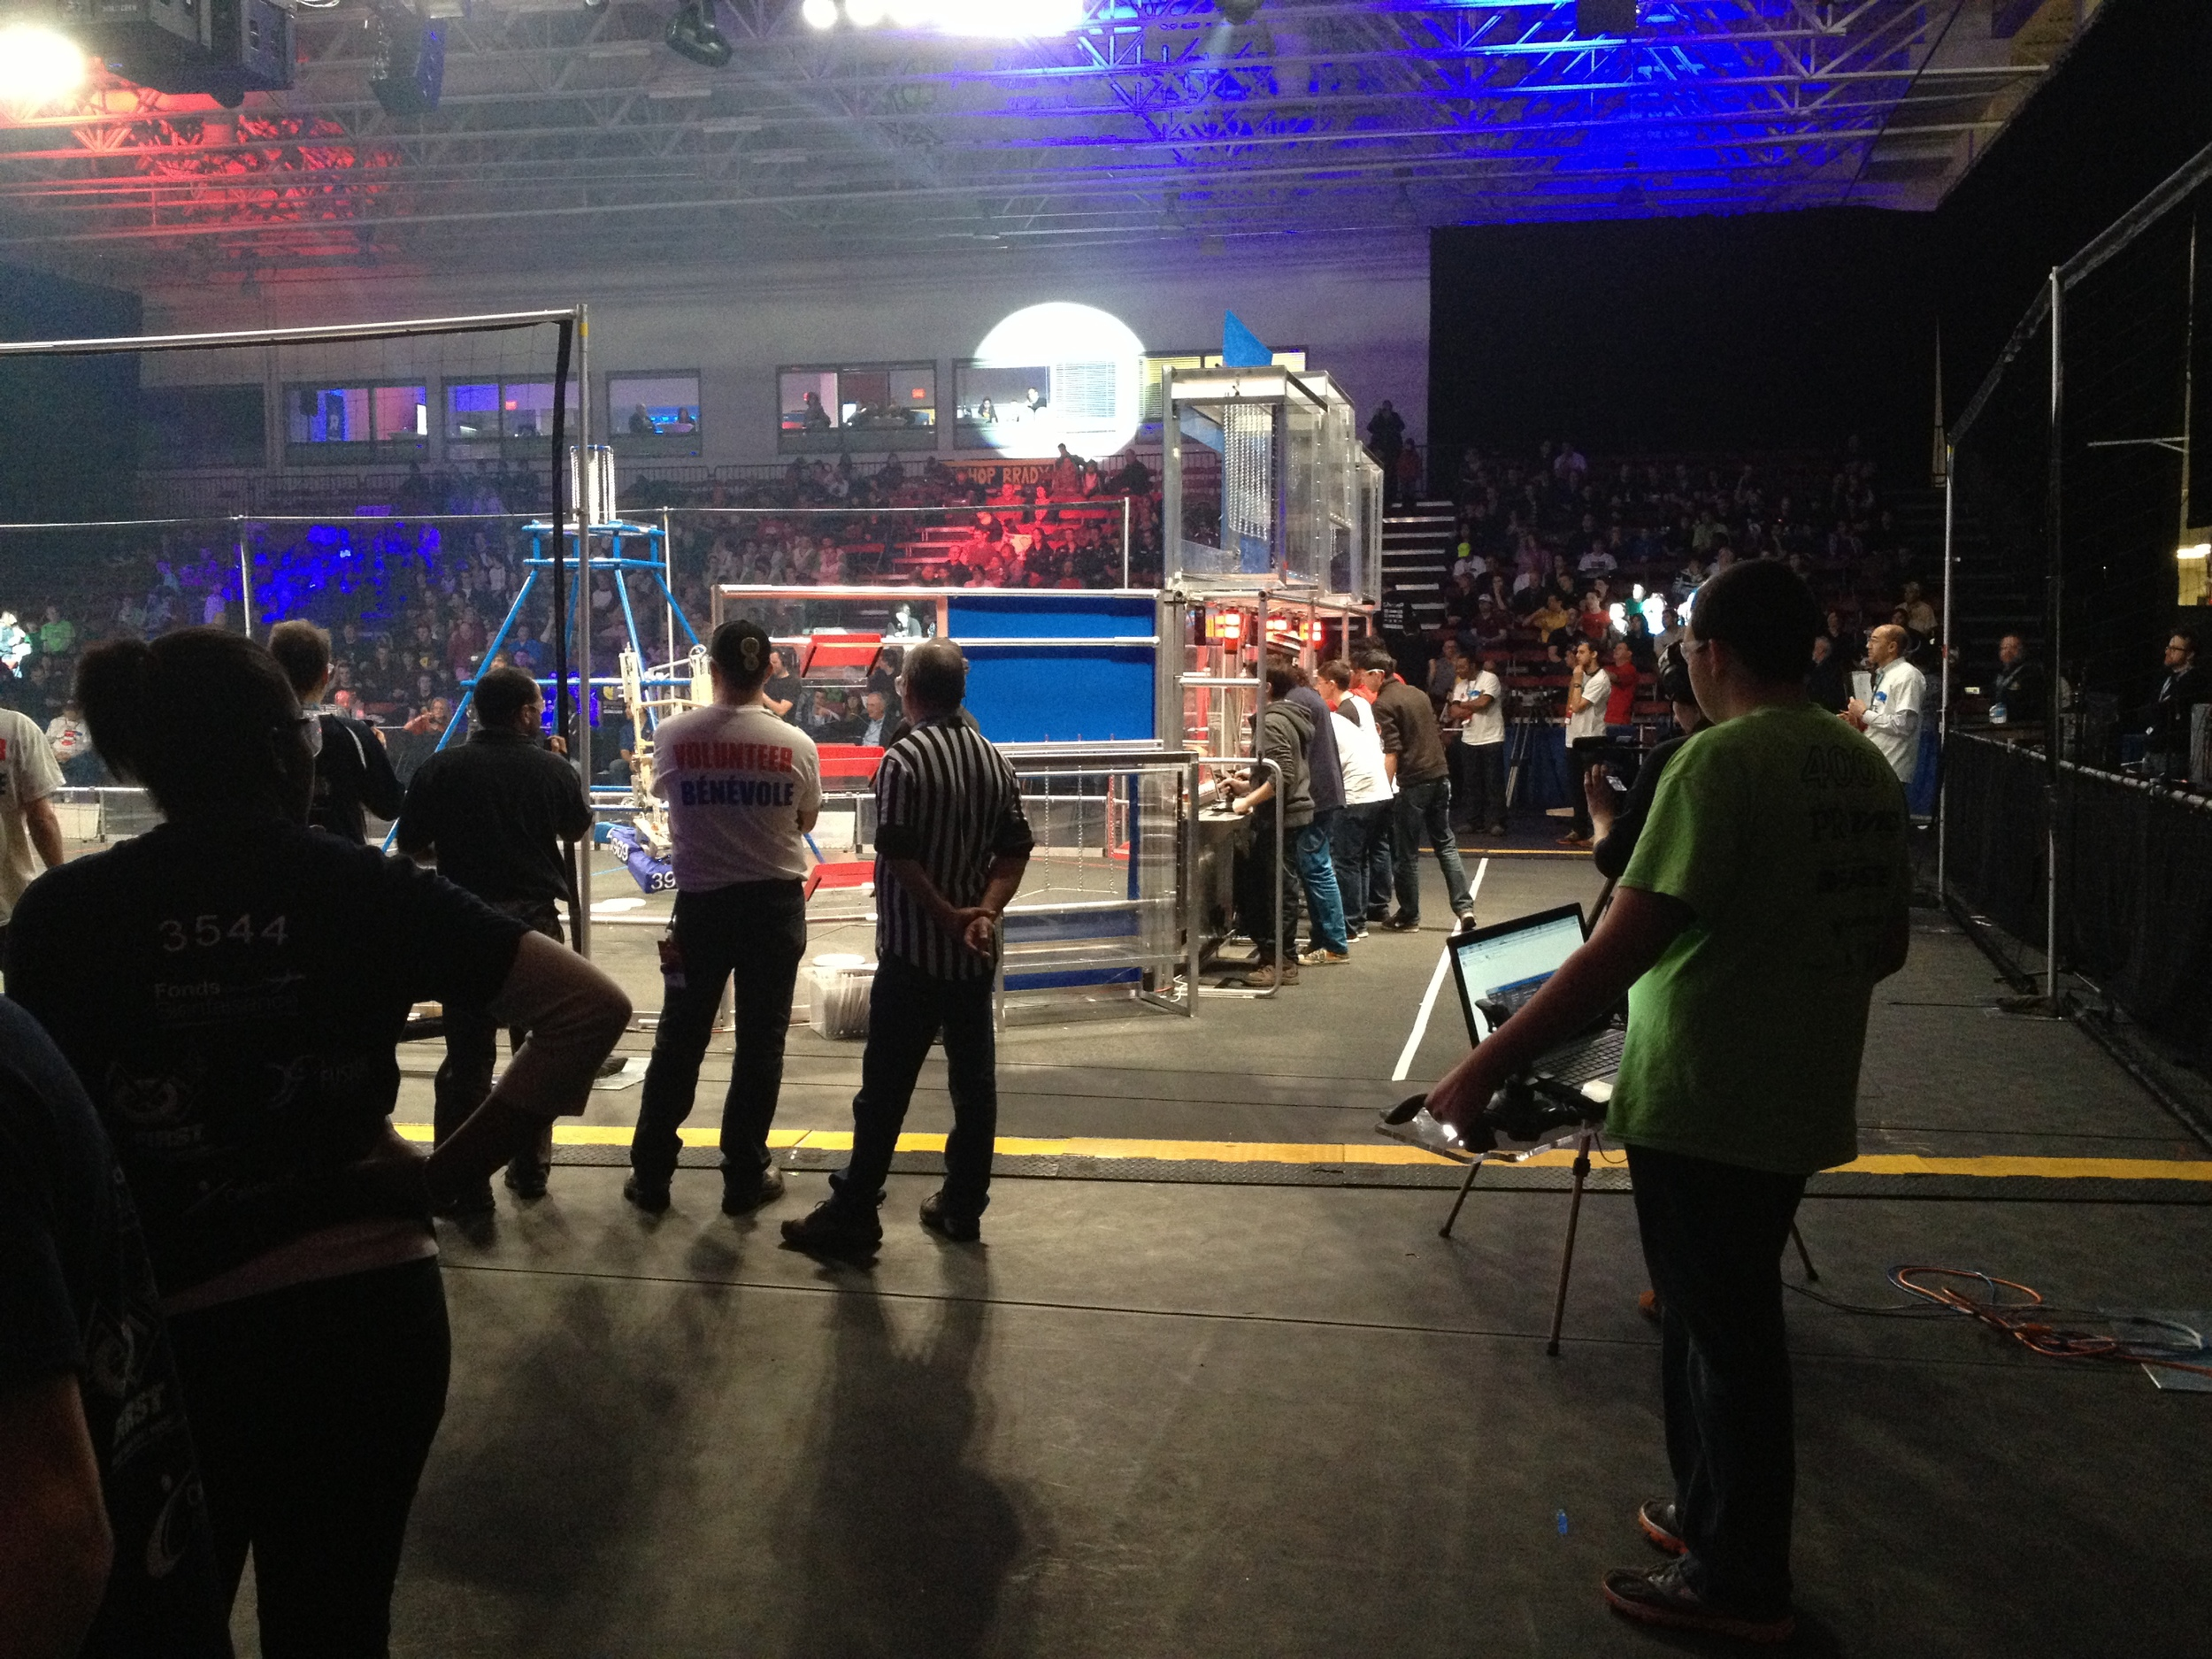 FIRST Robotics Quebec